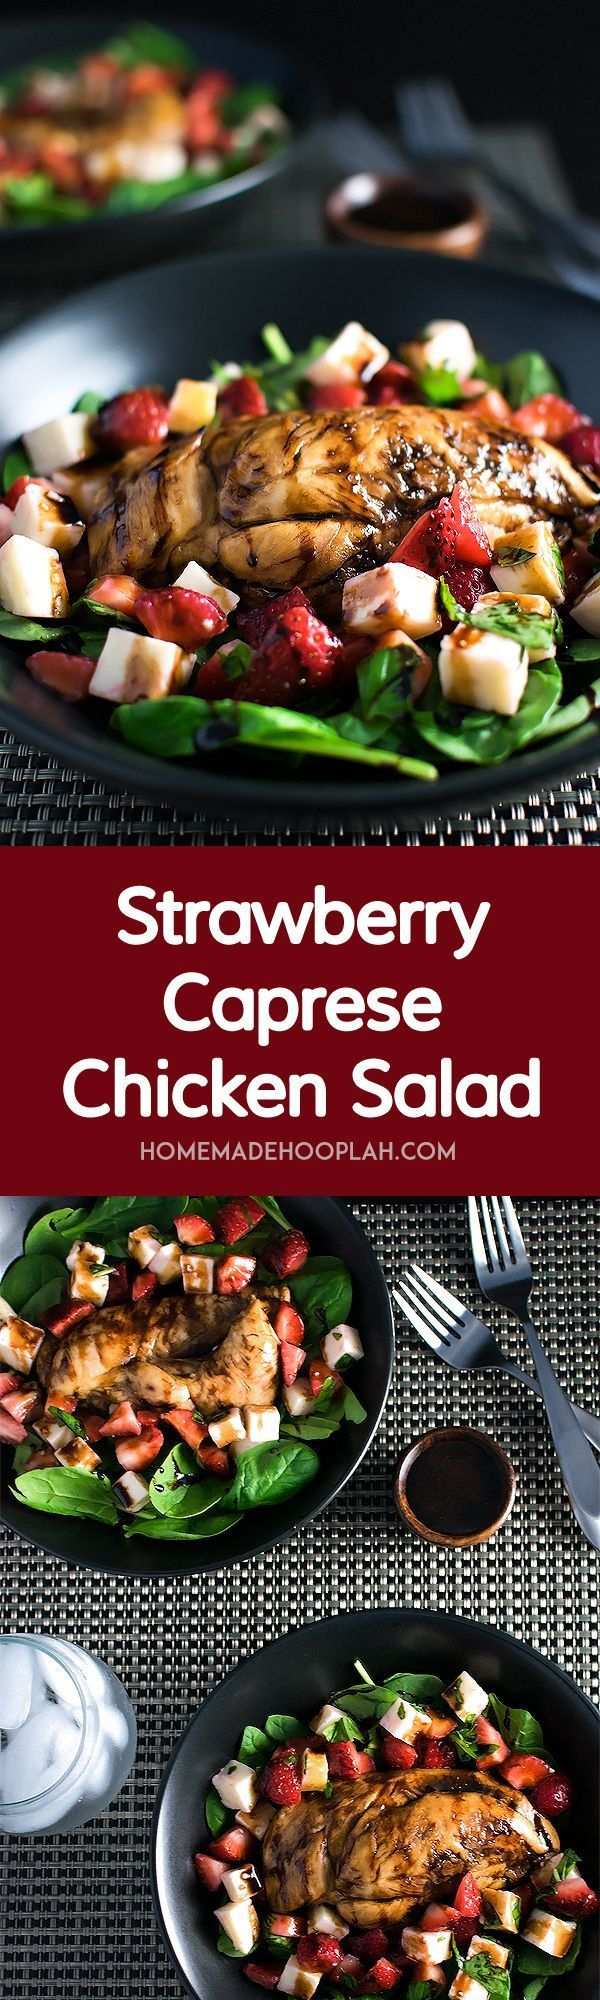 Strawberry Caprese Chicken Salad! Have a spring twist on a restaurant quality caprese salad with strawberries, mozzarella, and balsamic chicken. | HomemadeHooplah.com